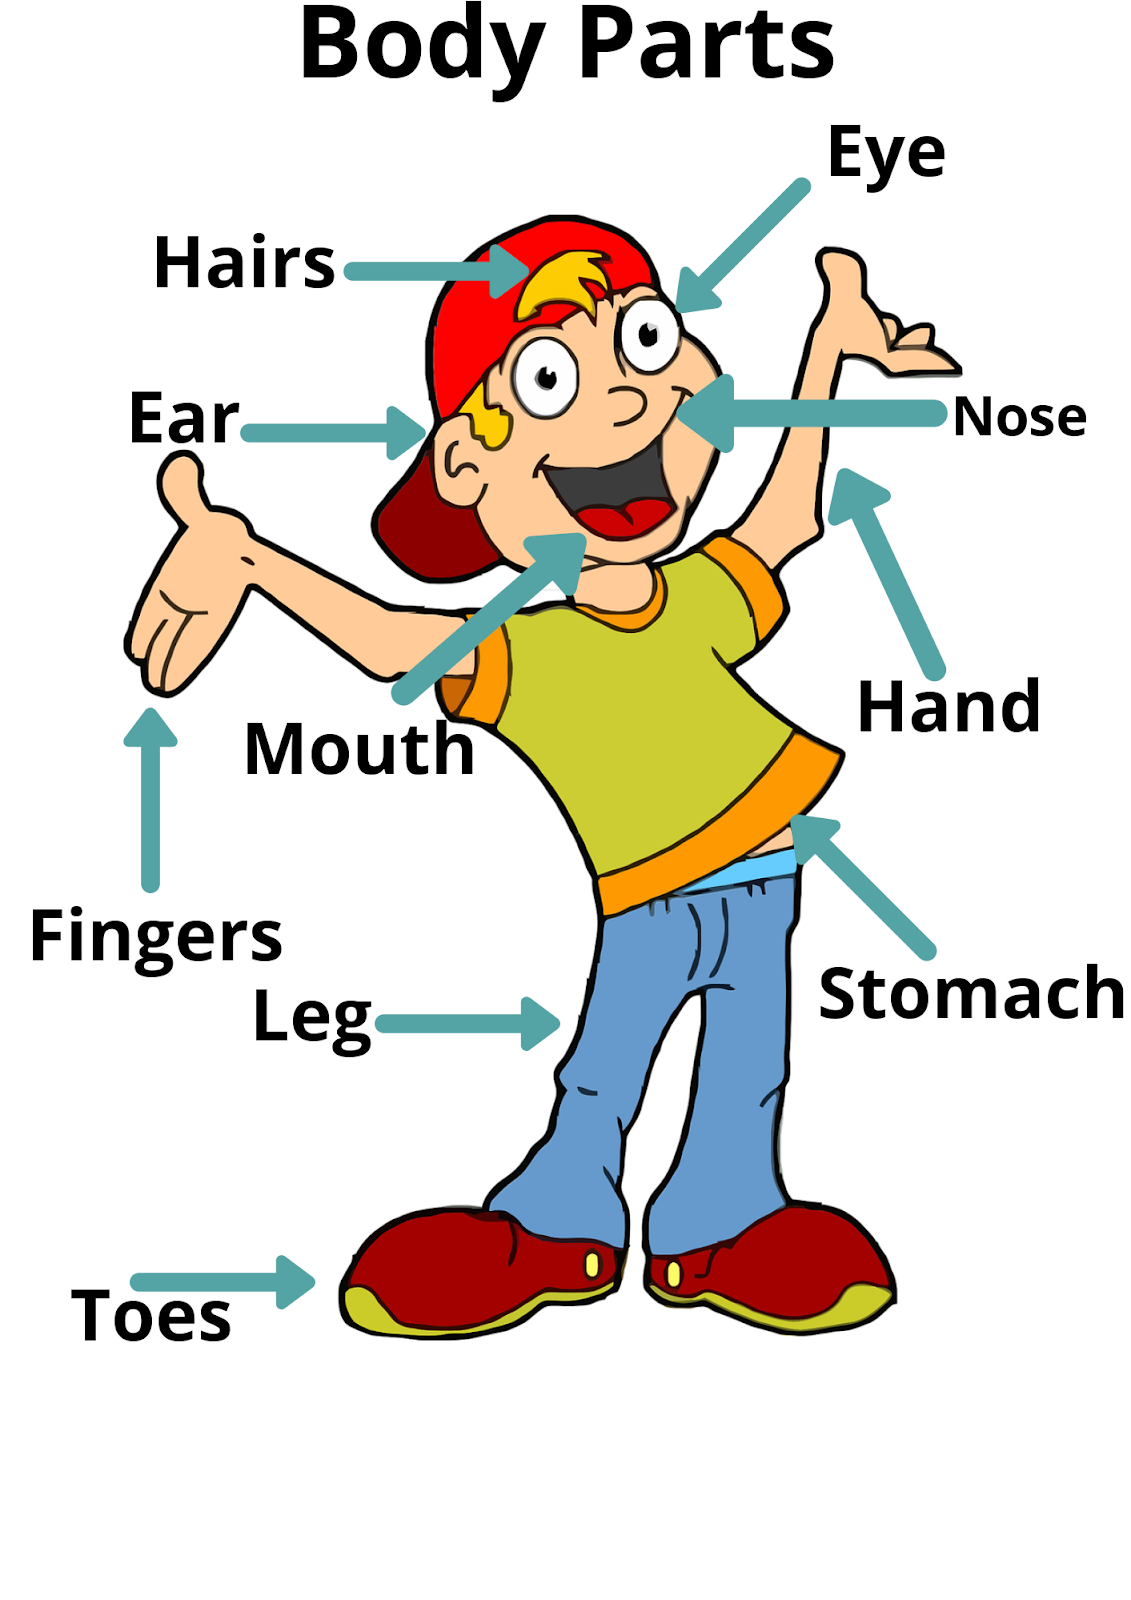 Body Parts For Toddlers